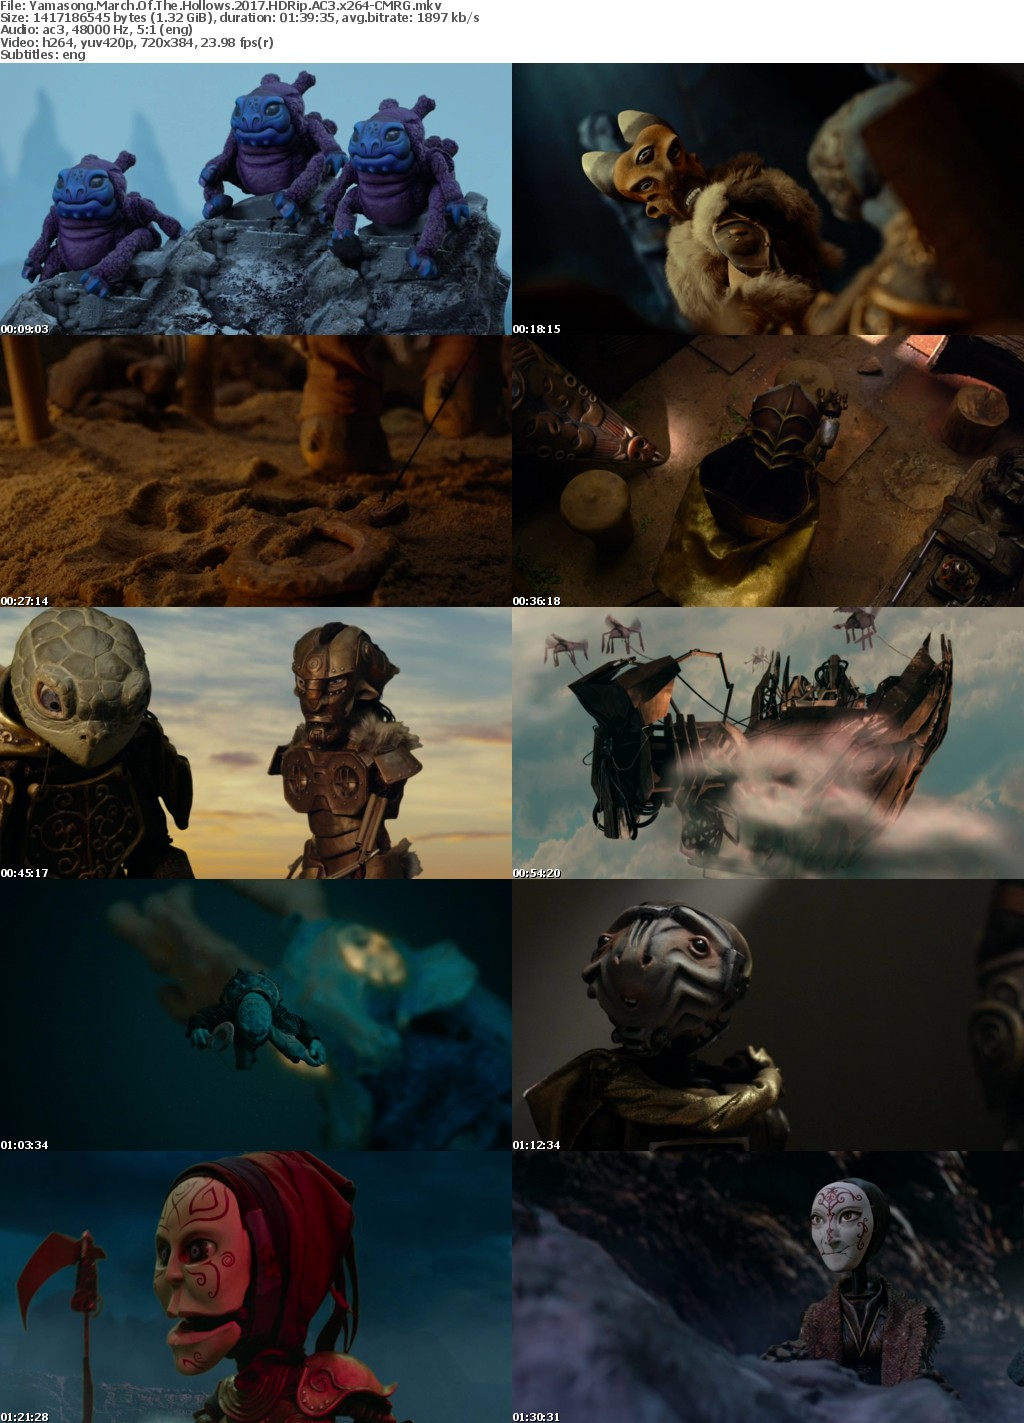 Yamasong March Of The Hollows (2017) HDRip AC3 x264-CMRG